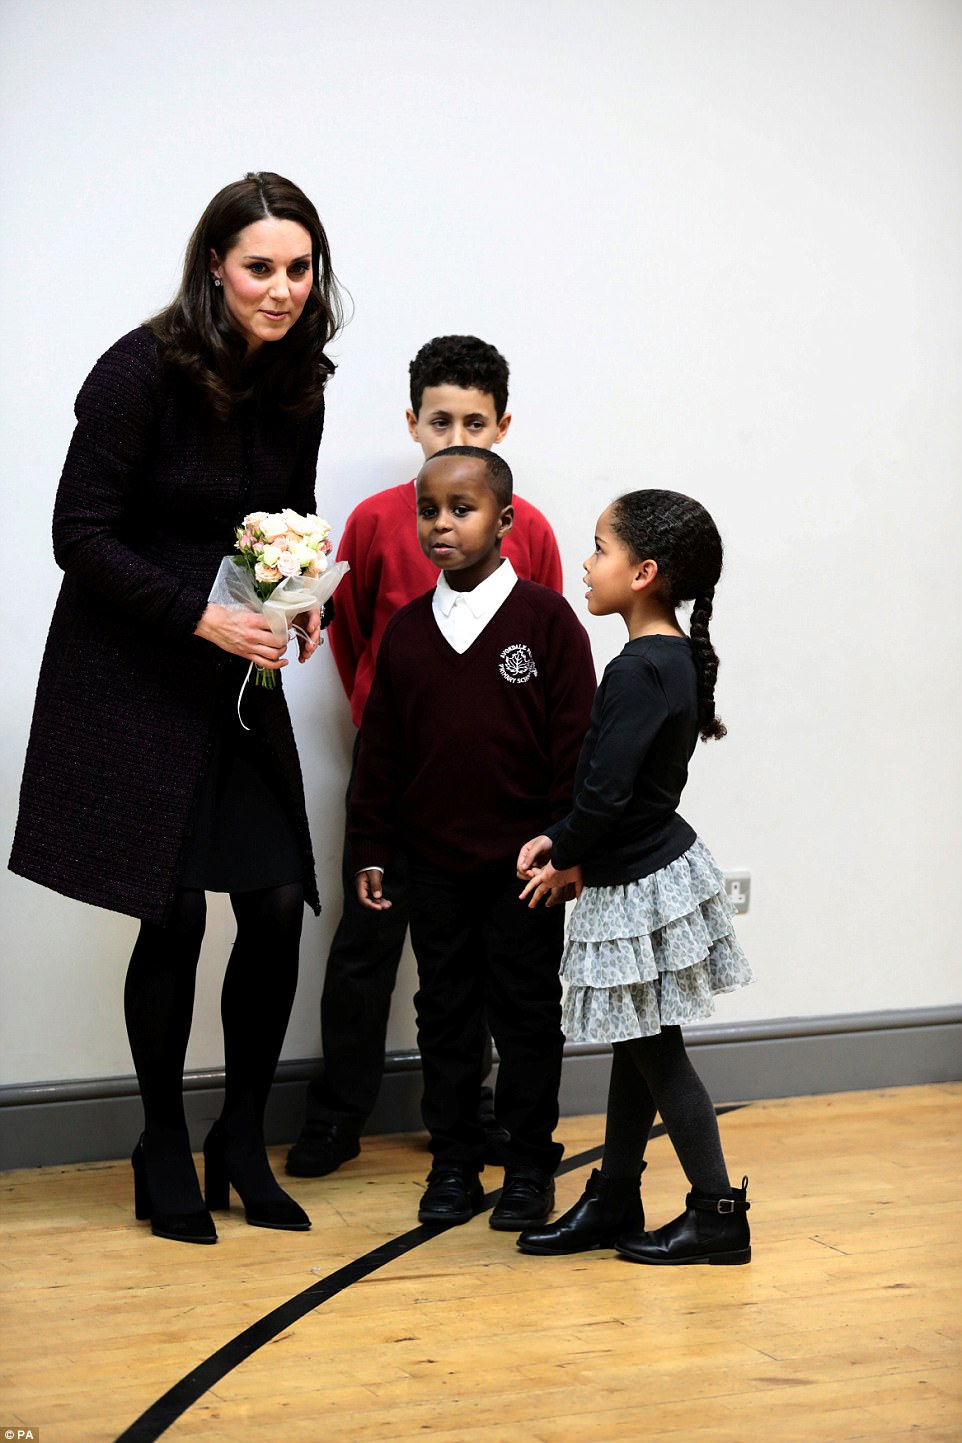 The Duchess of Cambridge speaks to Yahya Hussein Ali, seven, and Dawud Wahabi 10, children affected by the Grenfell Tower fire